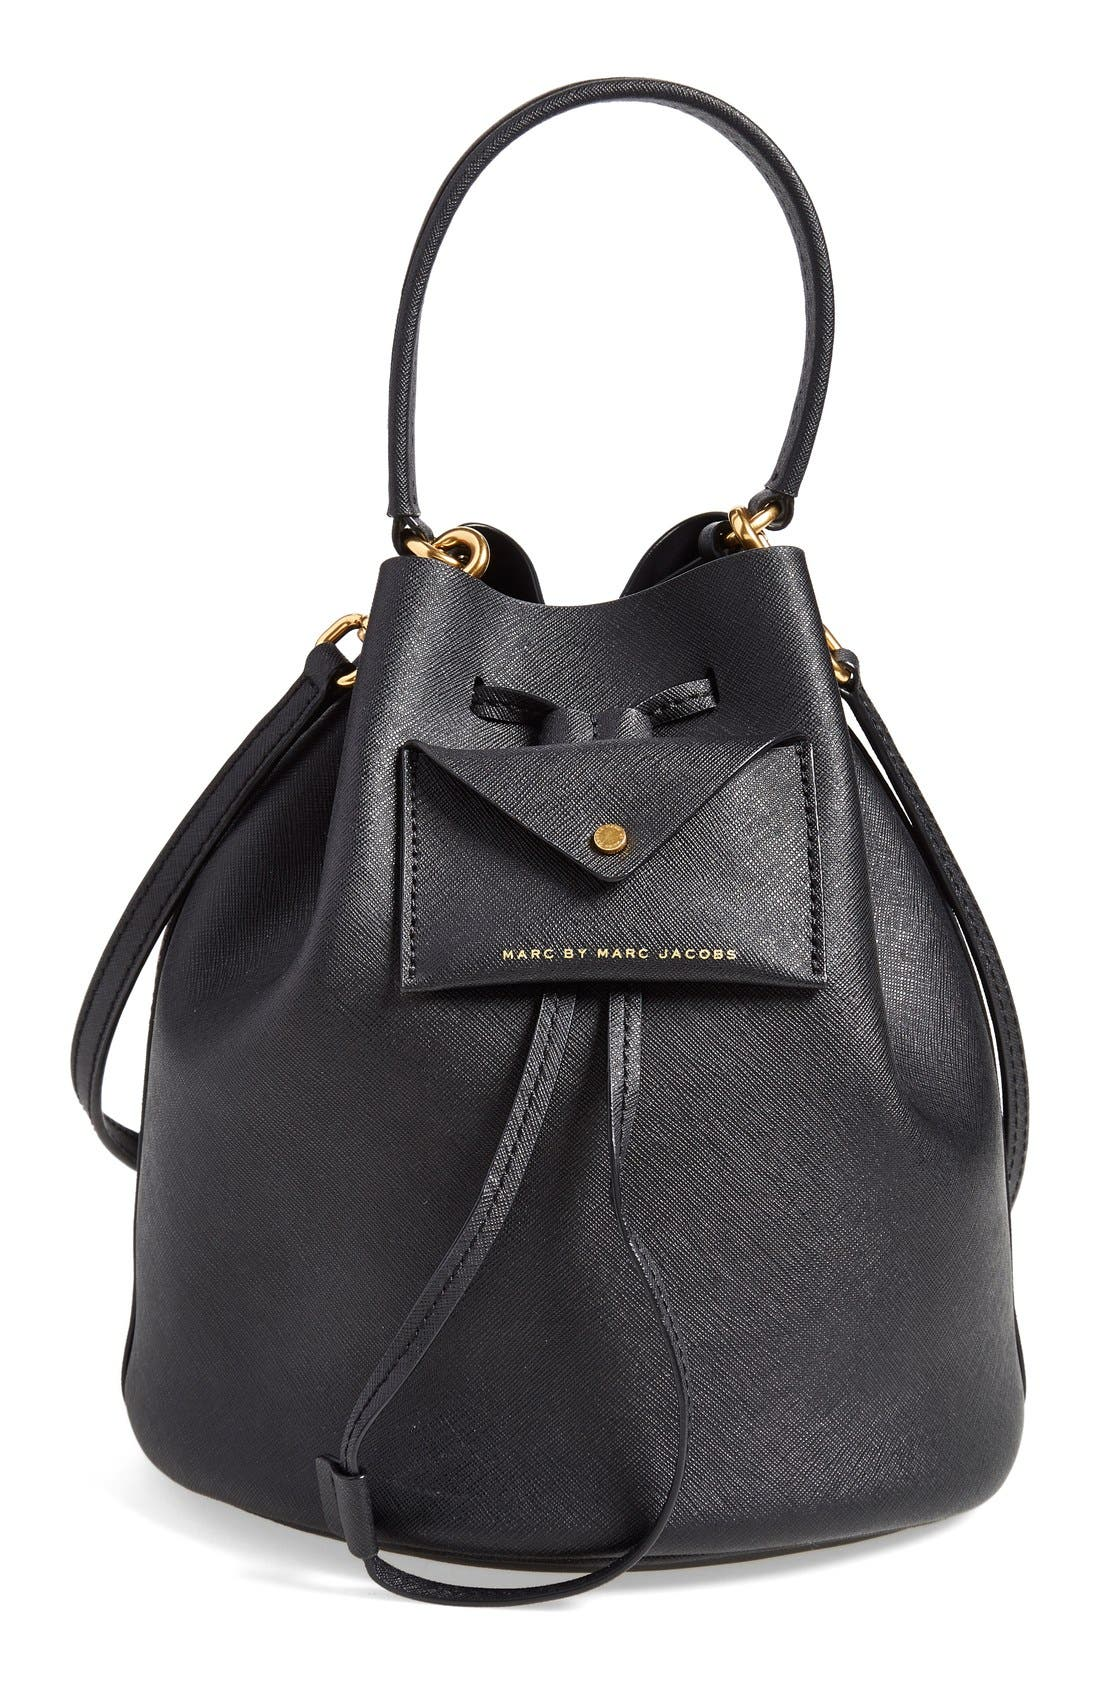 MARC BY MARC JACOBS 'Metropoli' Leather Bucket Bag,                             Main thumbnail 1, color,                             001